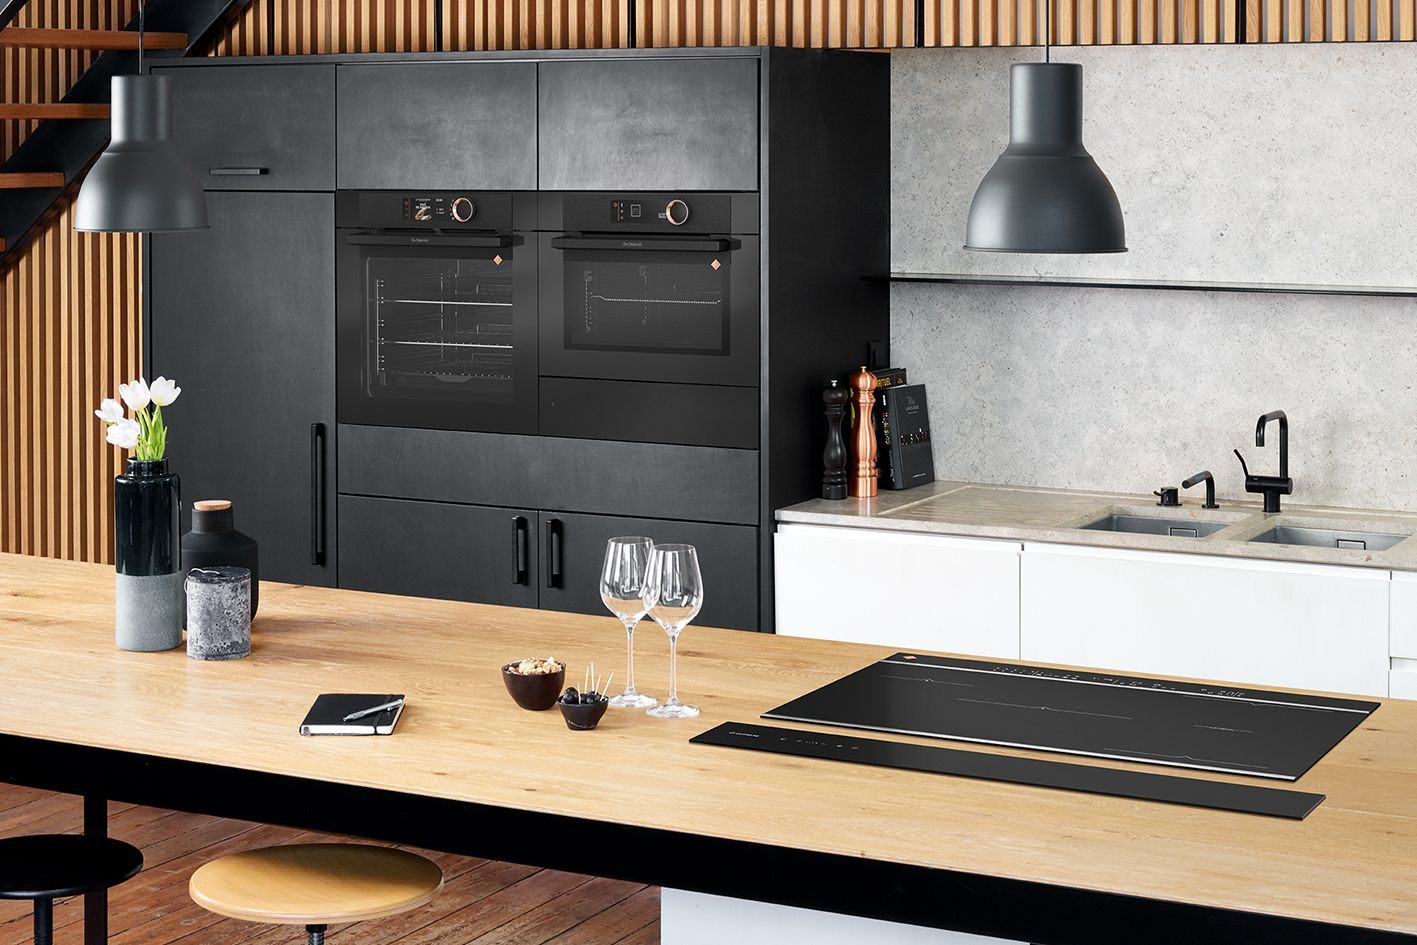 These High-Performing Ovens Allow You To Cook Smarter And Better